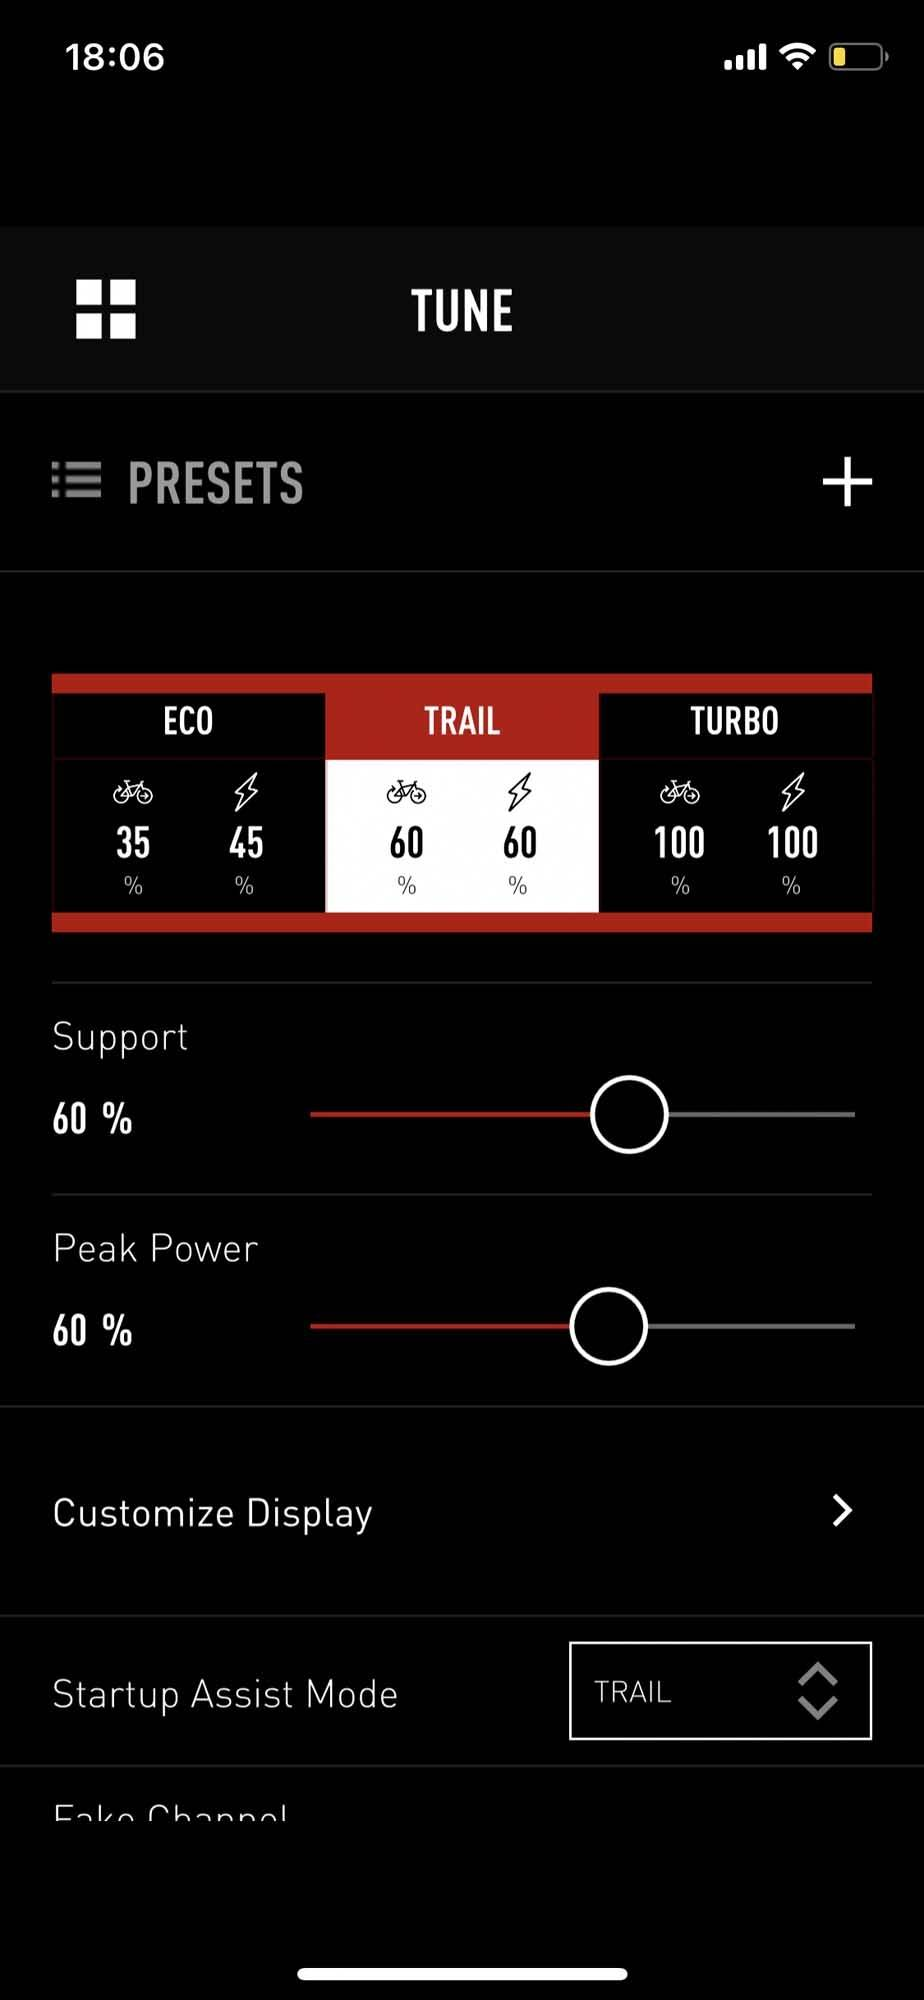 elsykkel specialized mission control app justering